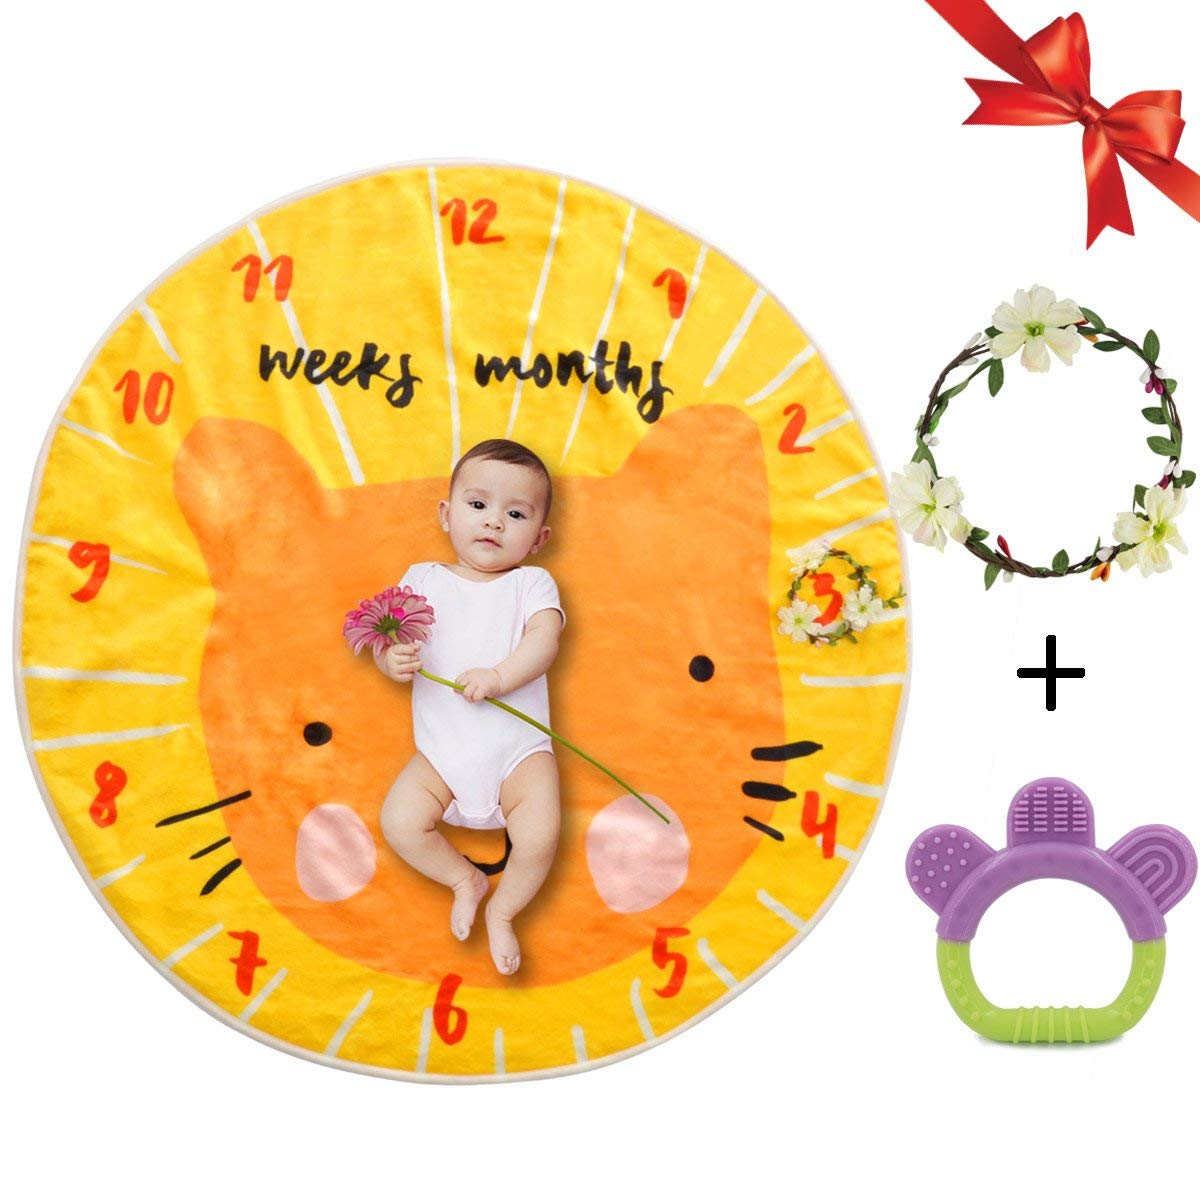 Monthly Baby Milestone Blanket Photo Props set, Shoots Backdrop for Newborn Boy or Girl Photography Weekly, Orange, Wreath Frame Included